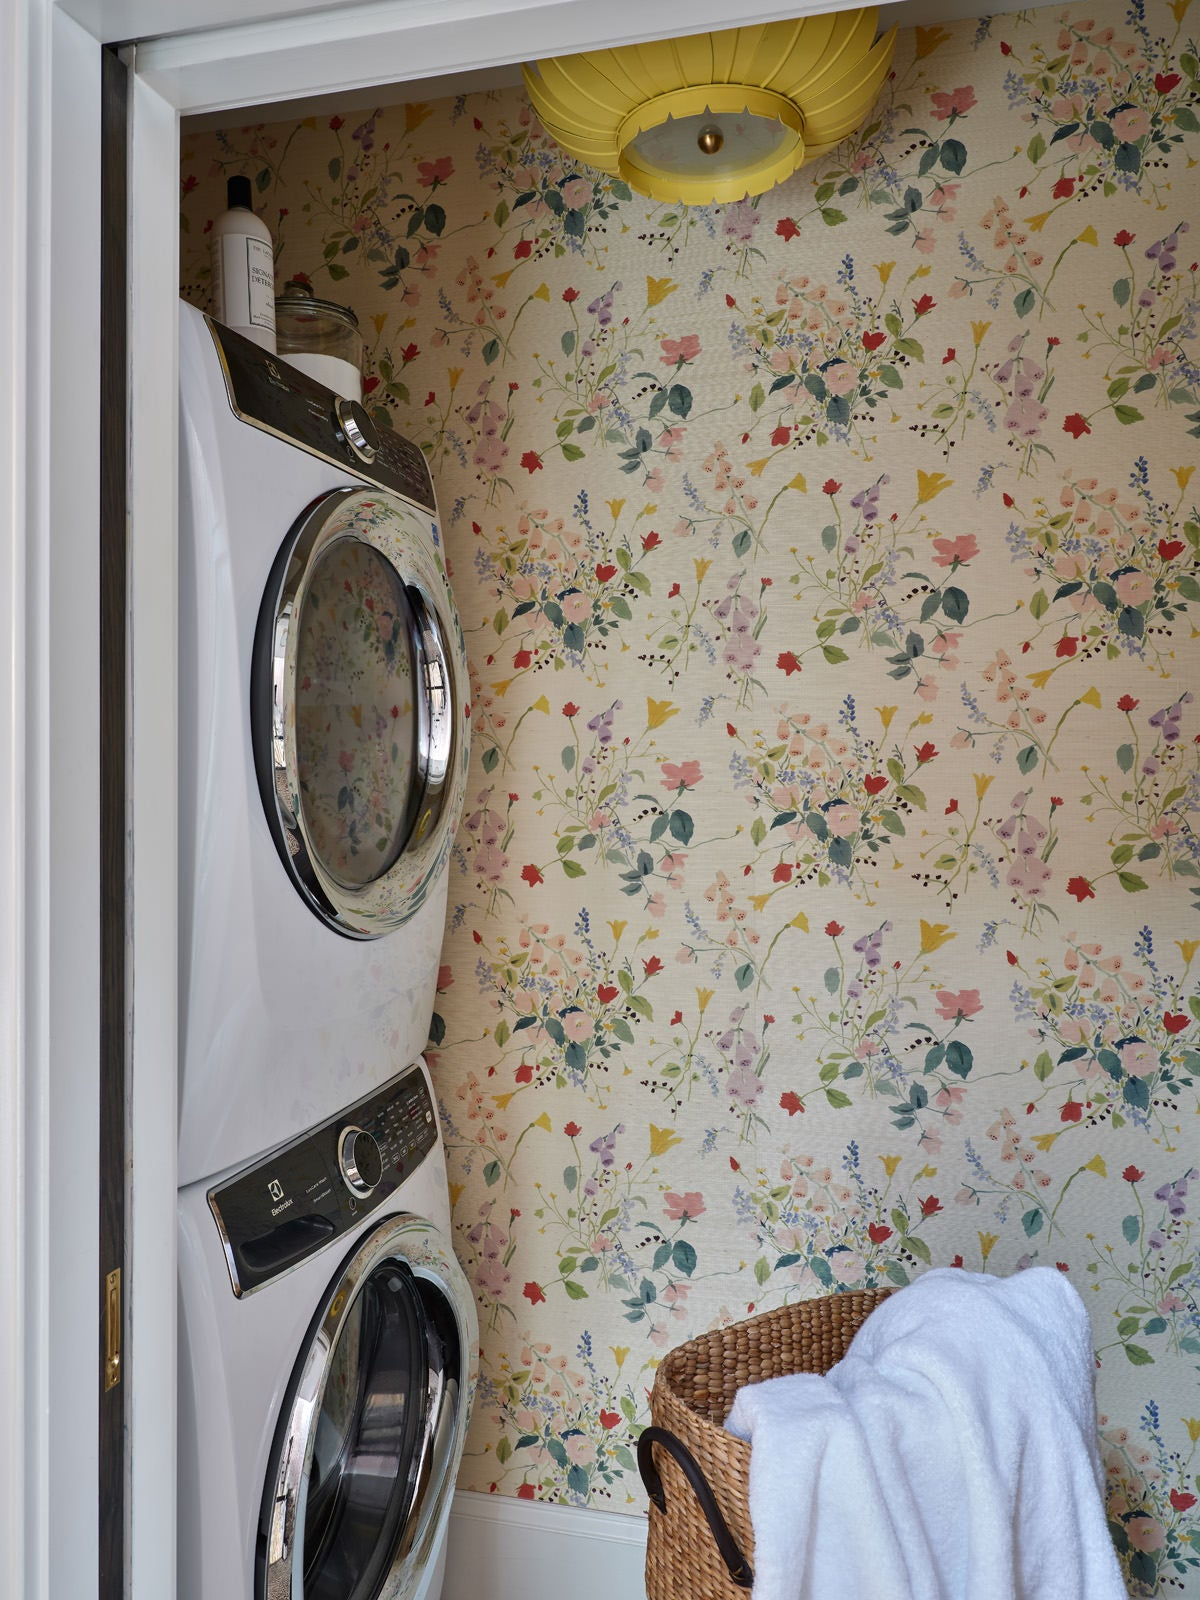 floral wallpaper with washer and dryer stacked to the side wall